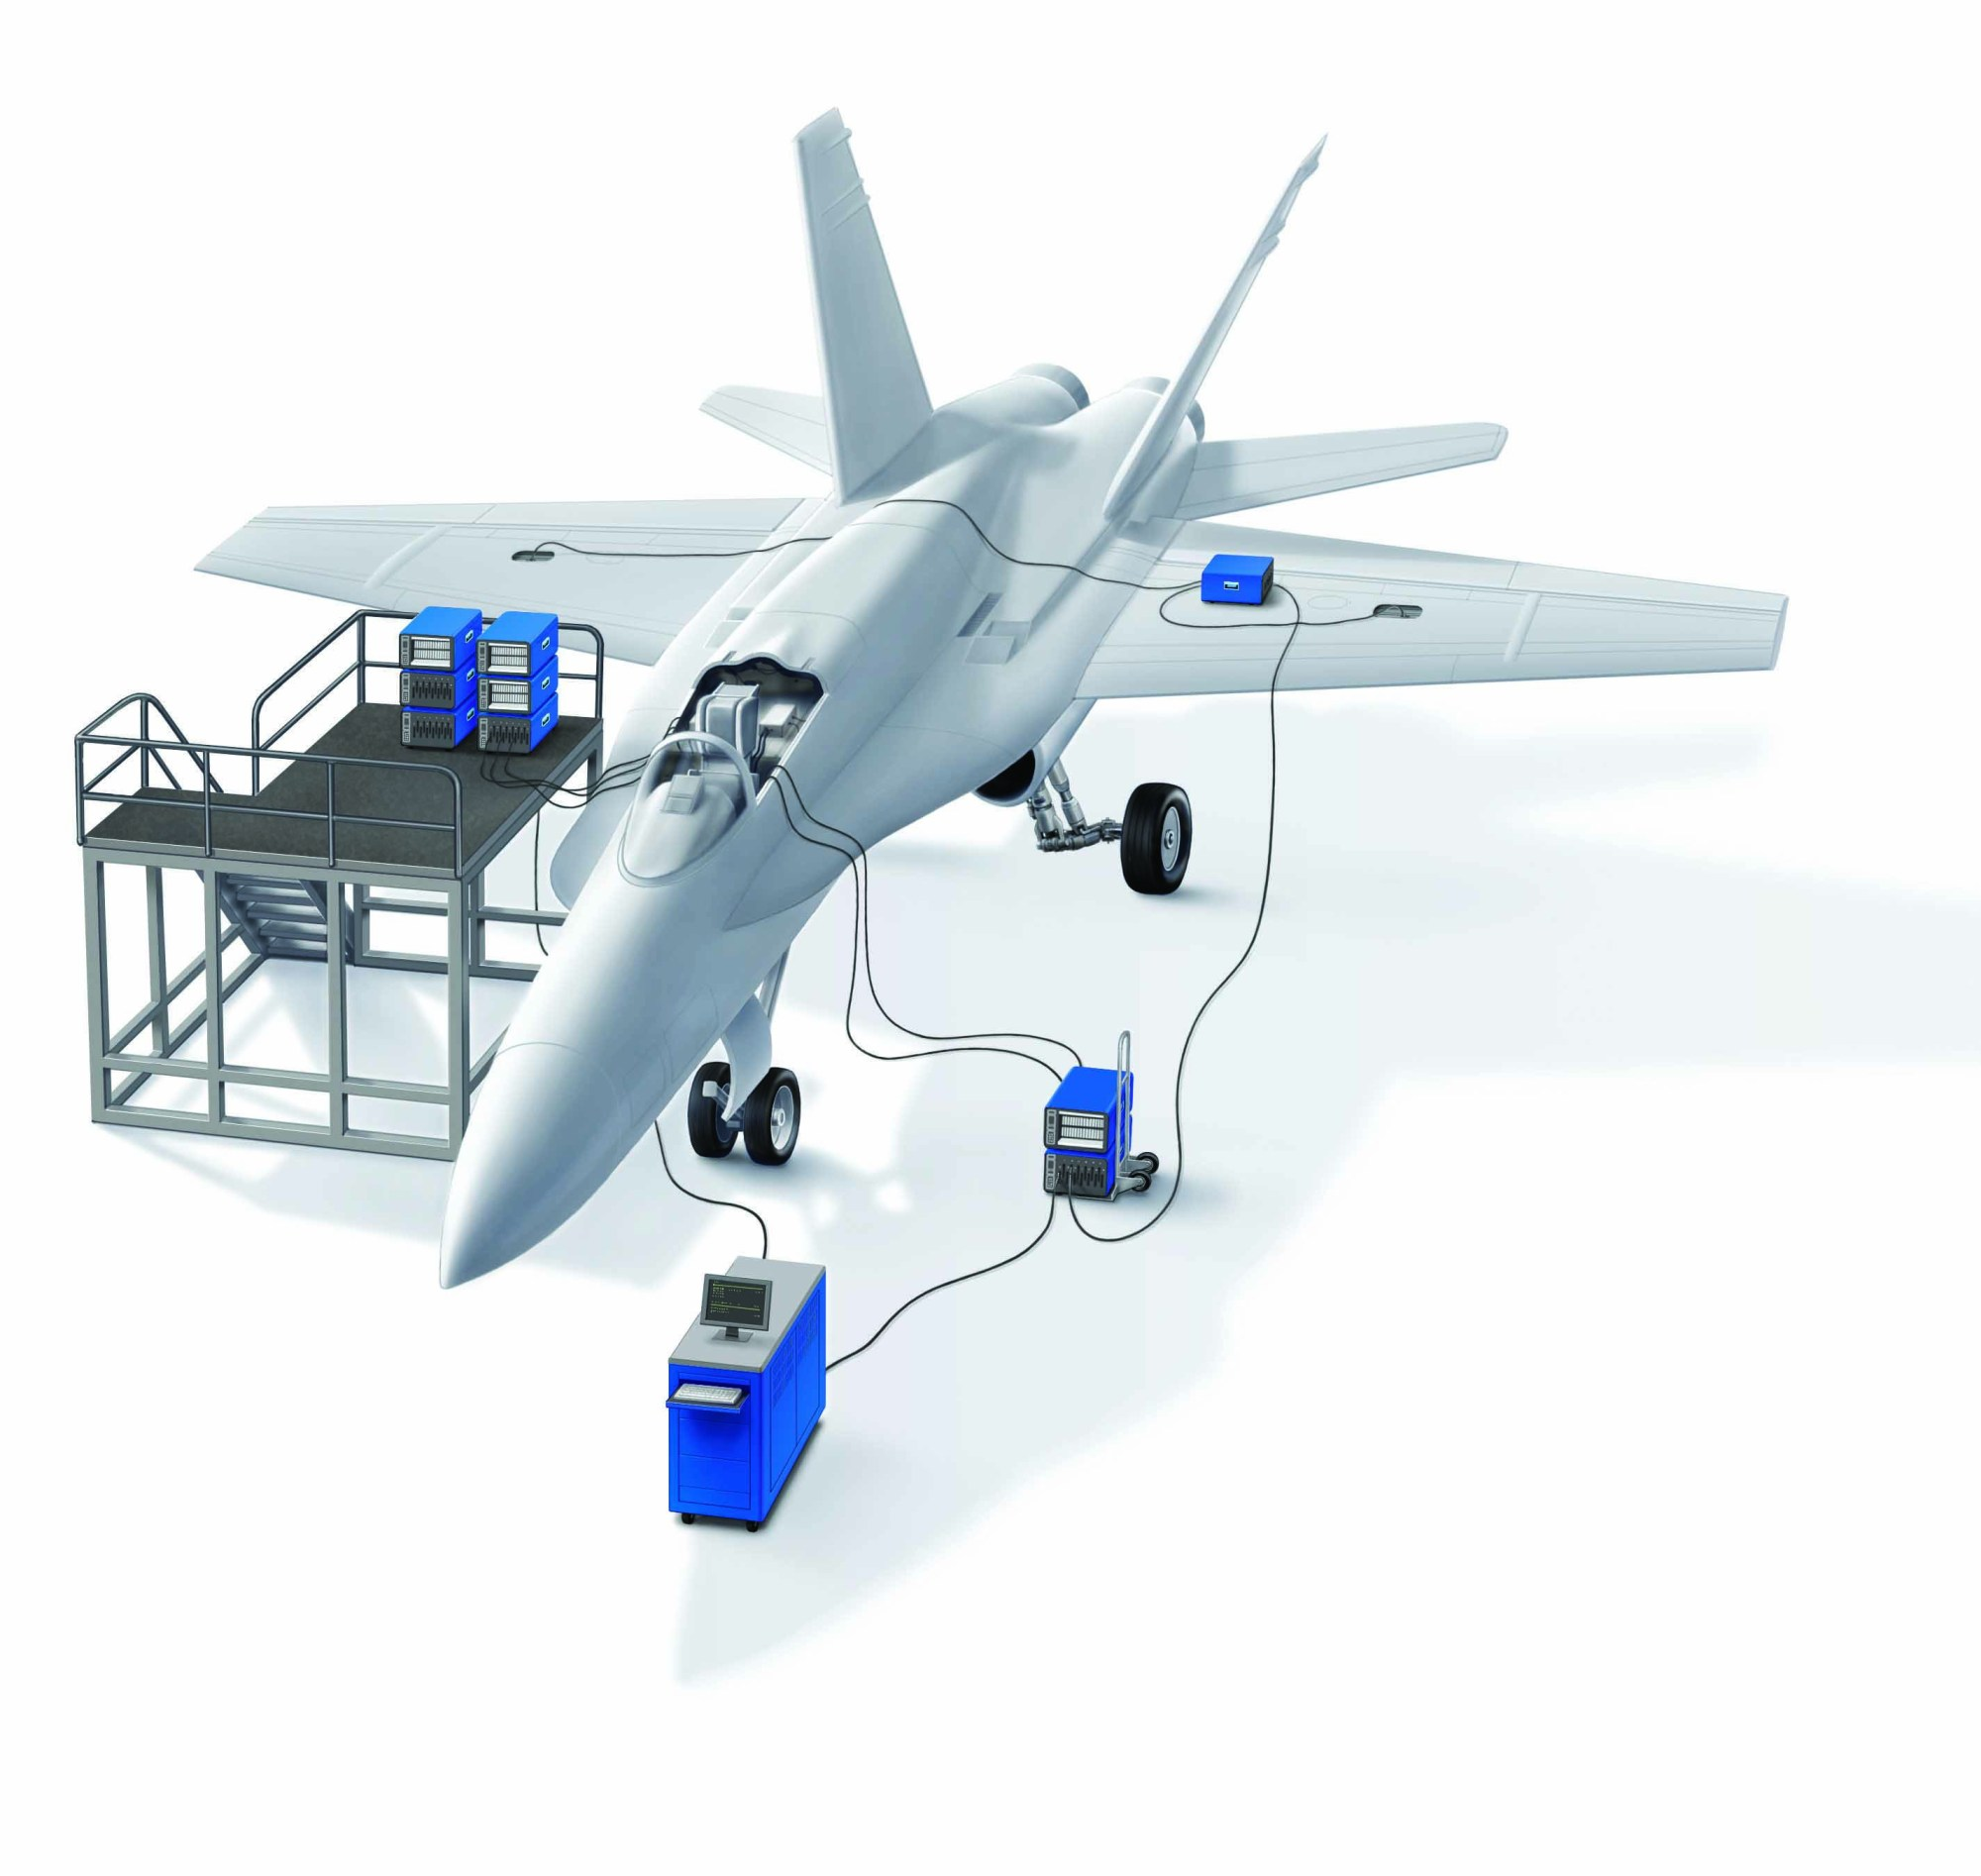 hight resolution of dit mco 2650 s modular design facilitates distributed placement of modules around an aircraft allowing for much shorter adapter cables